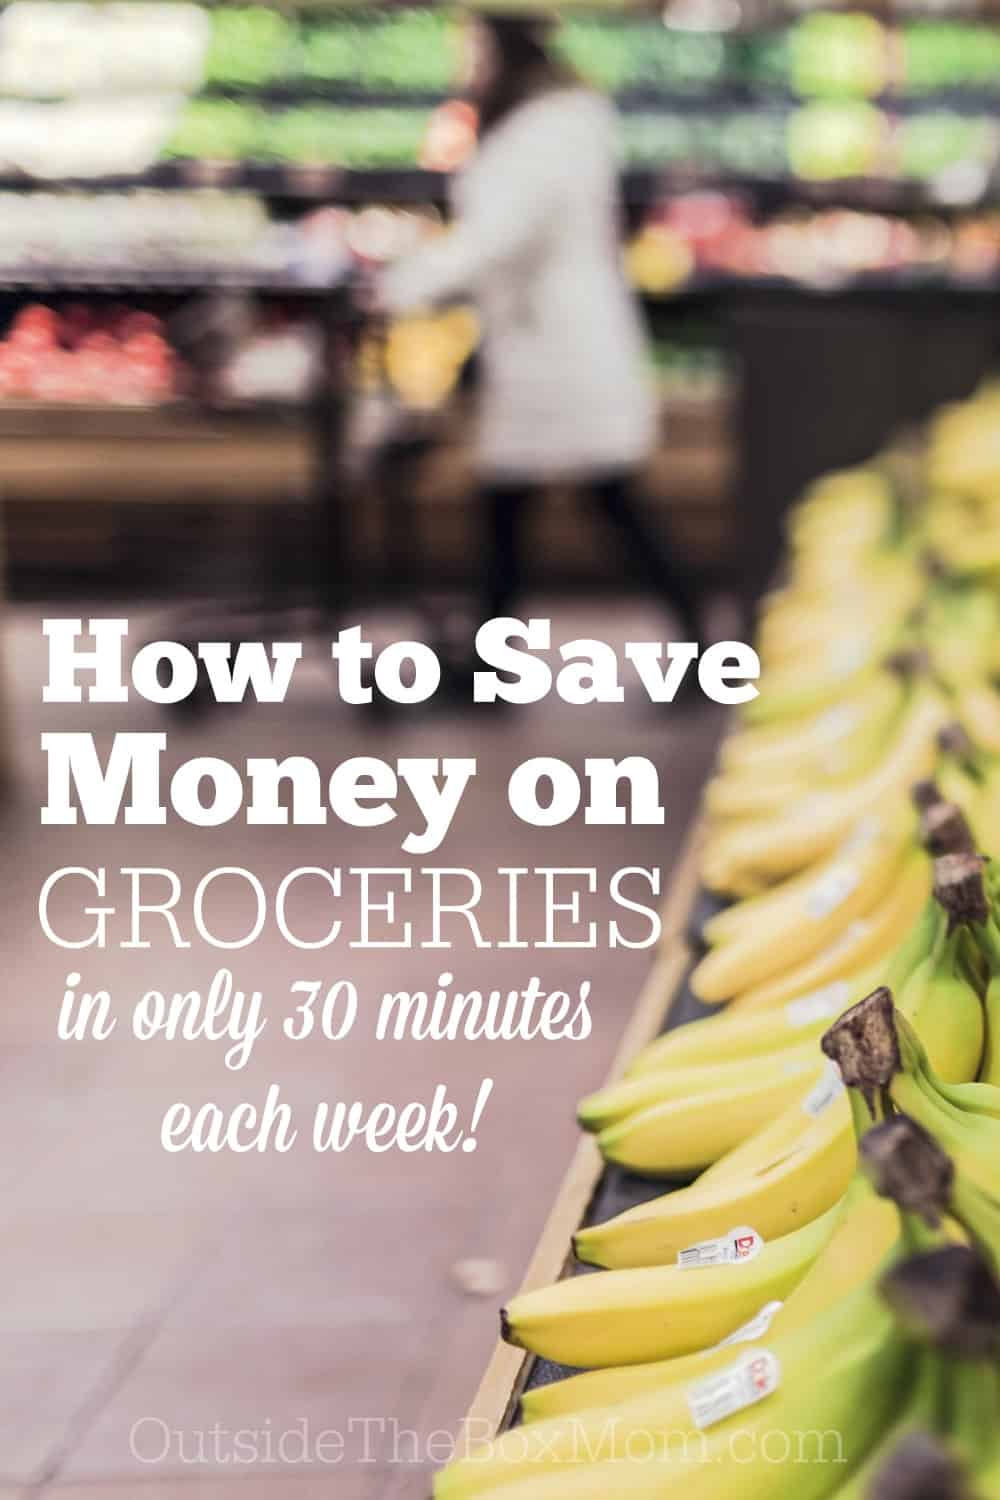 If you are tired of spending insane amounts of money on groceries each week and feel like as soon as you buy it, it's gone, this post is for you!